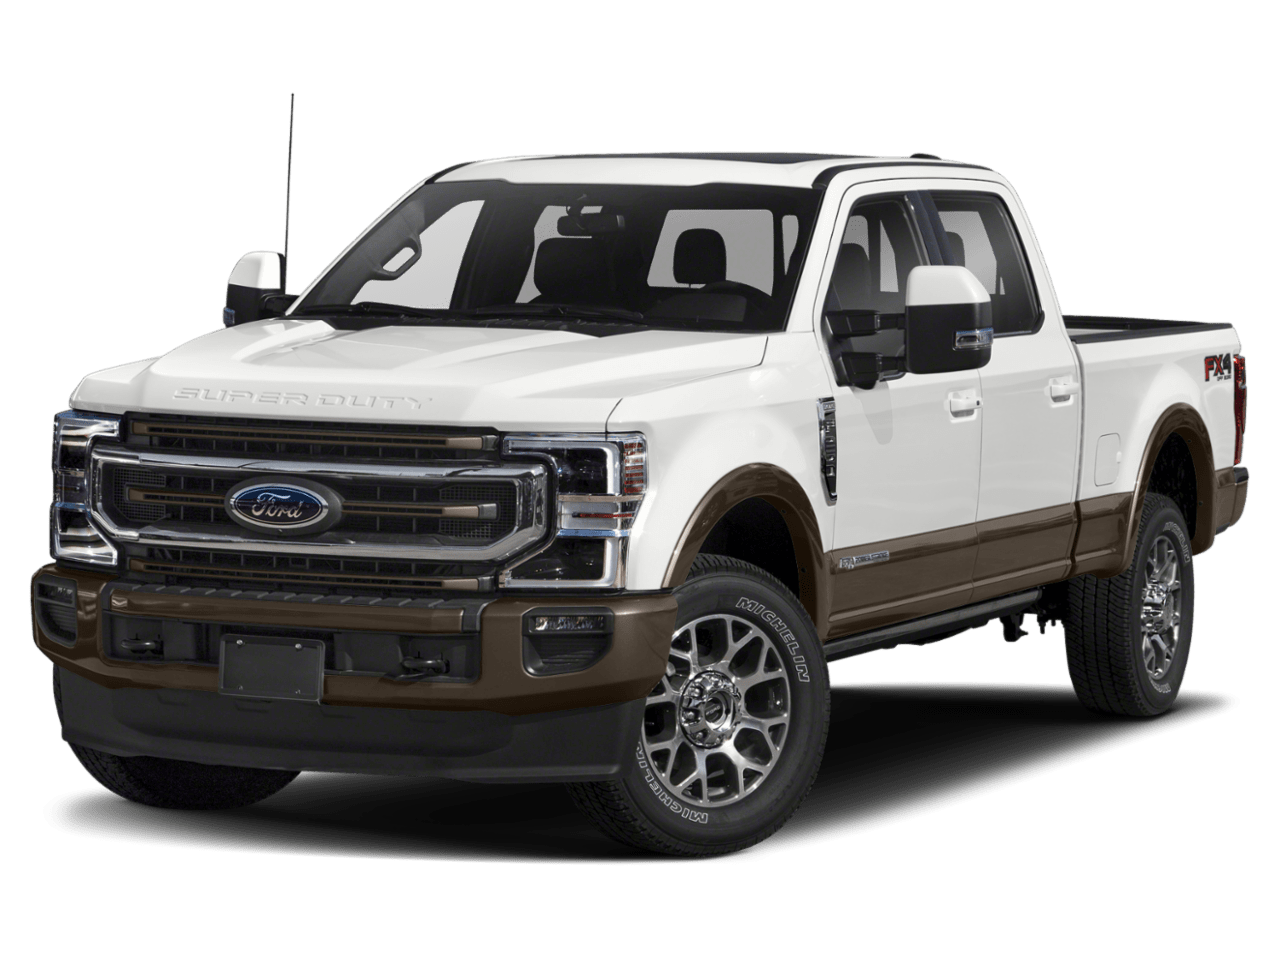 Small photo of the King Ranch trim